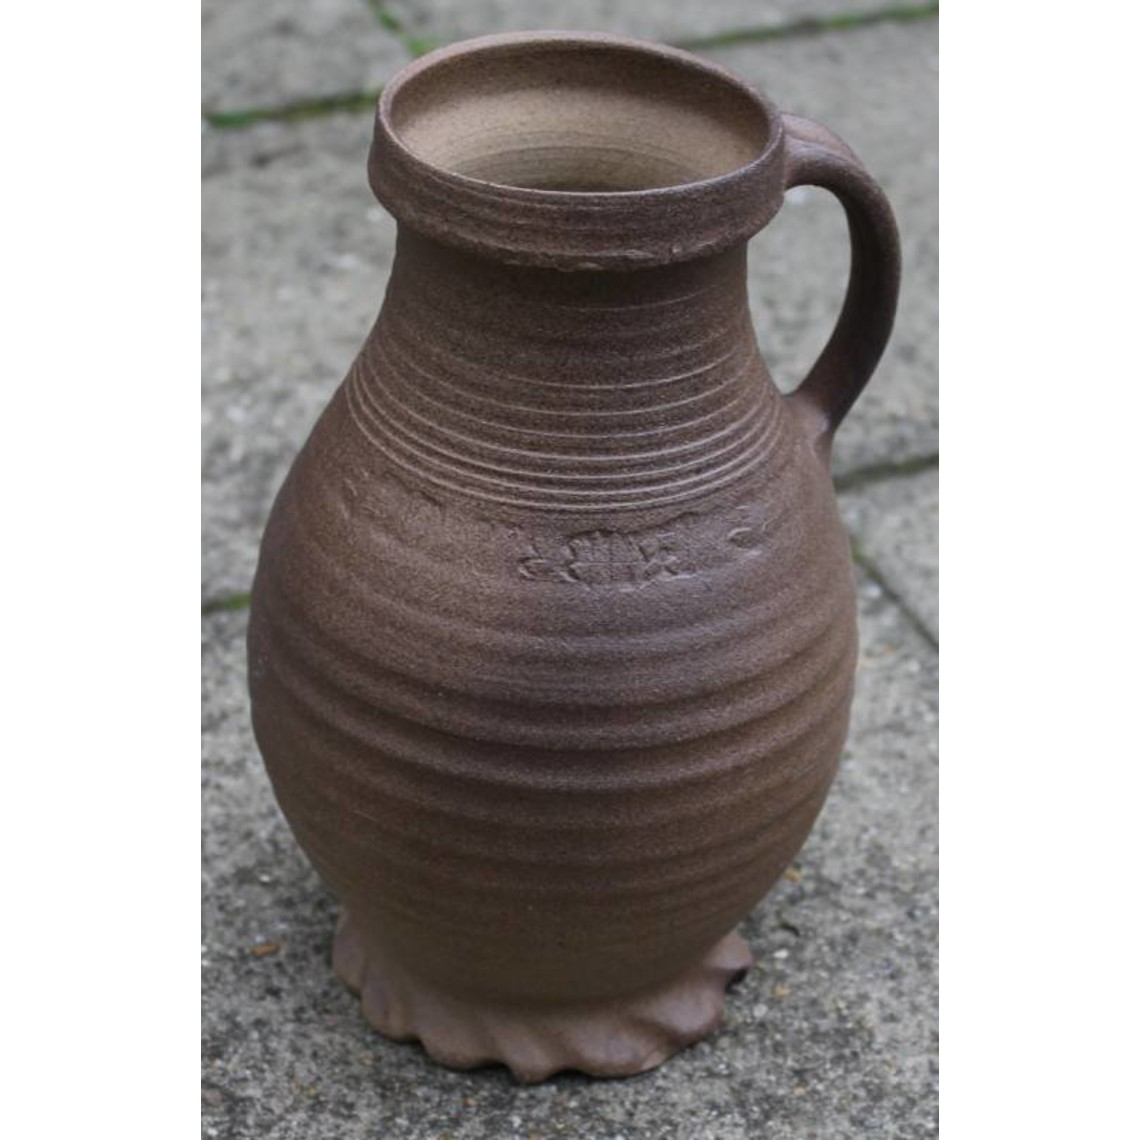 13th century jug with imprints